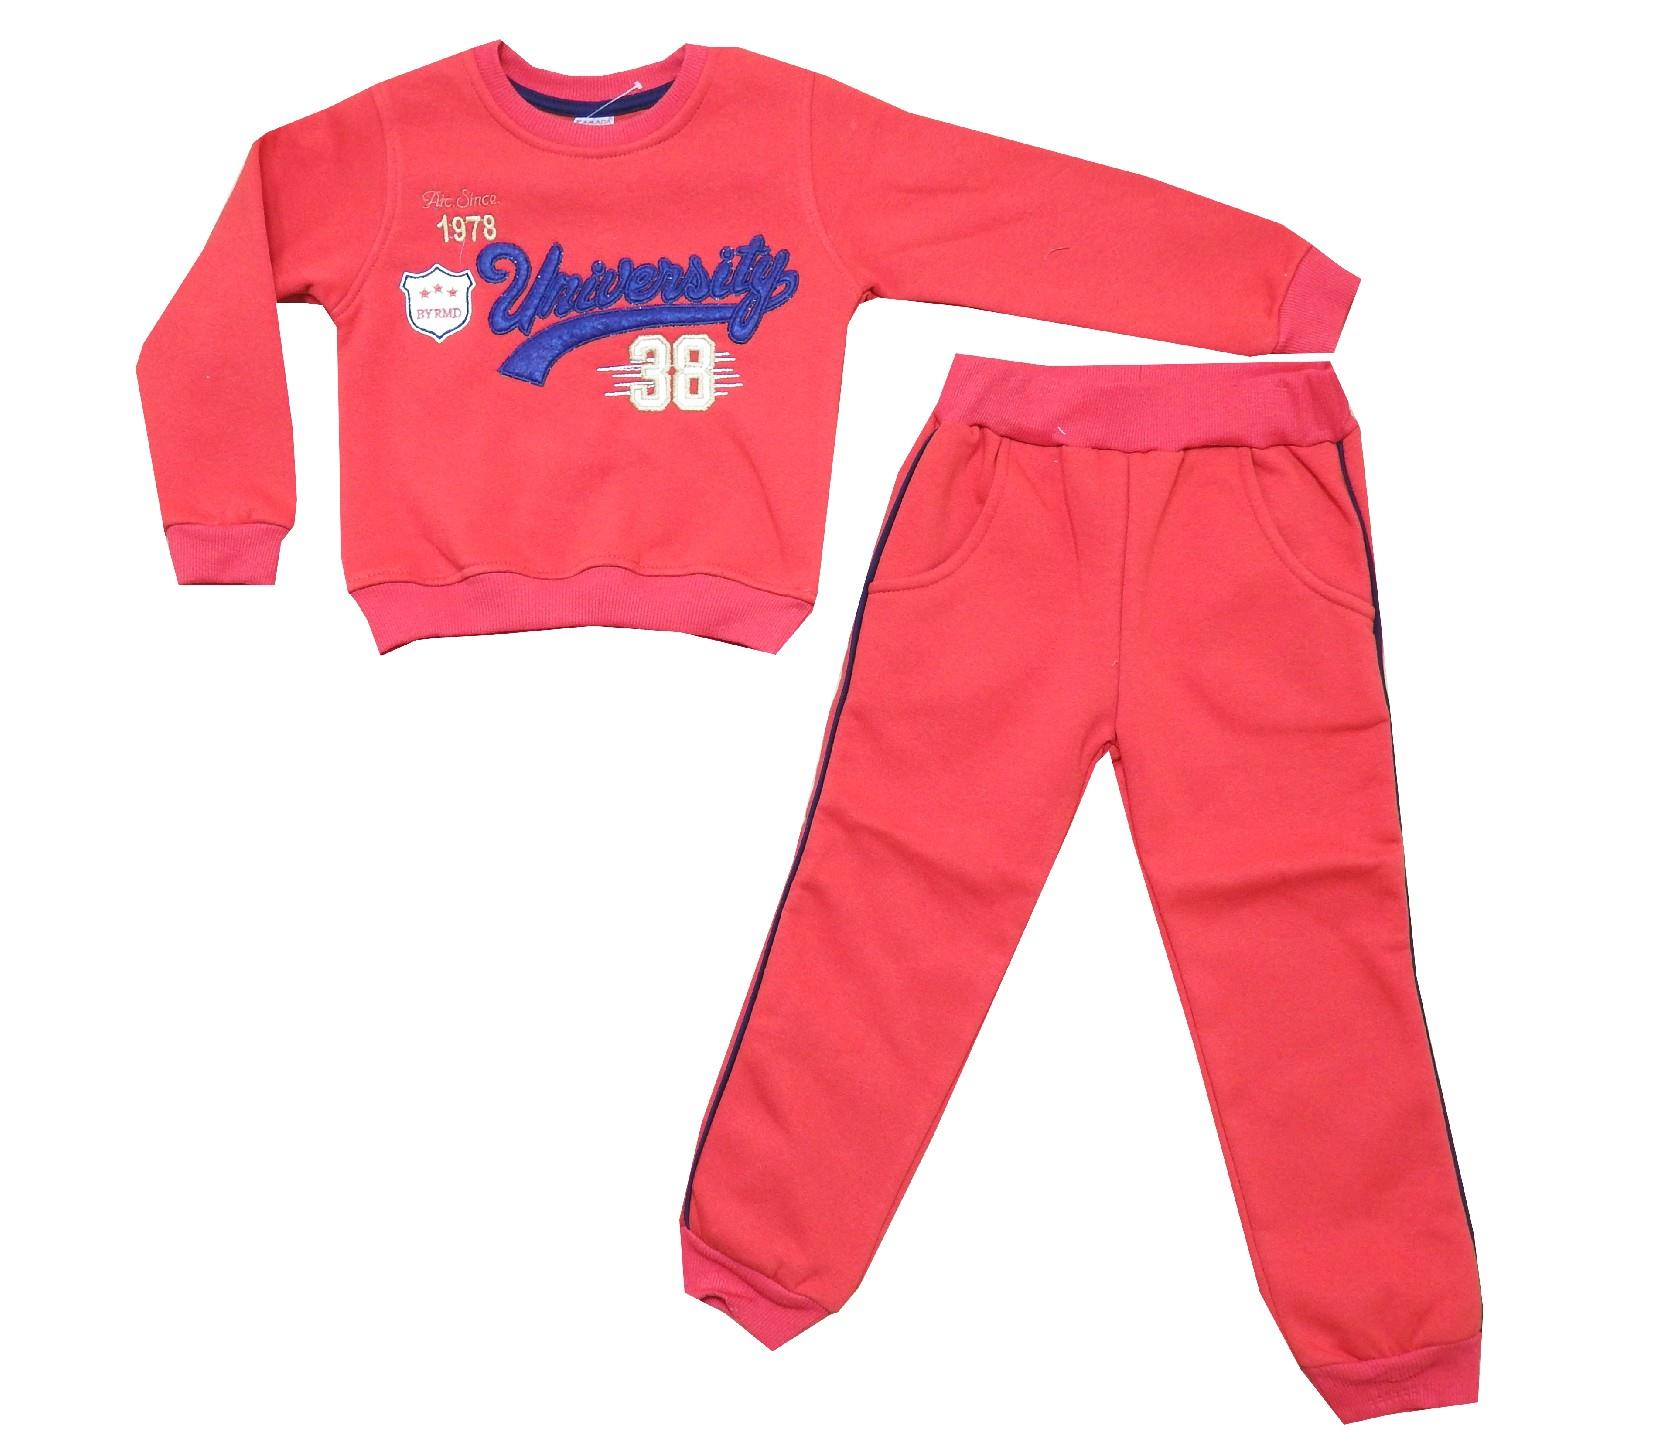 Wholesale ''university 38'' printed tracksuit for boy (5-6-7-8 age)